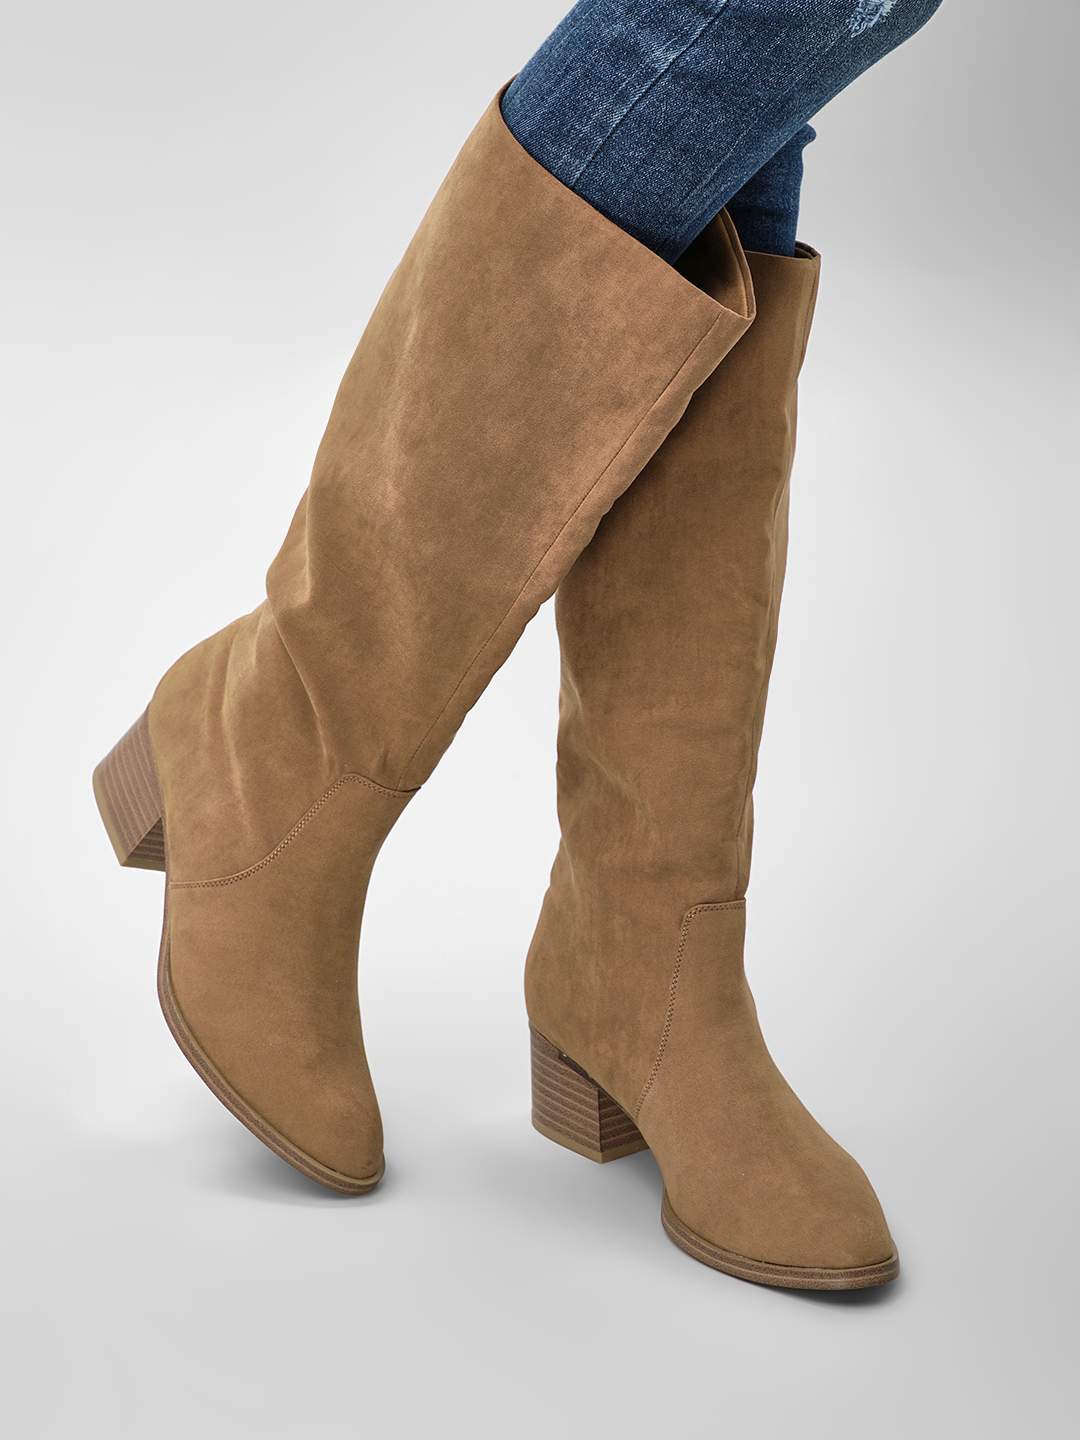 New Look Suede Finish Heeled B...